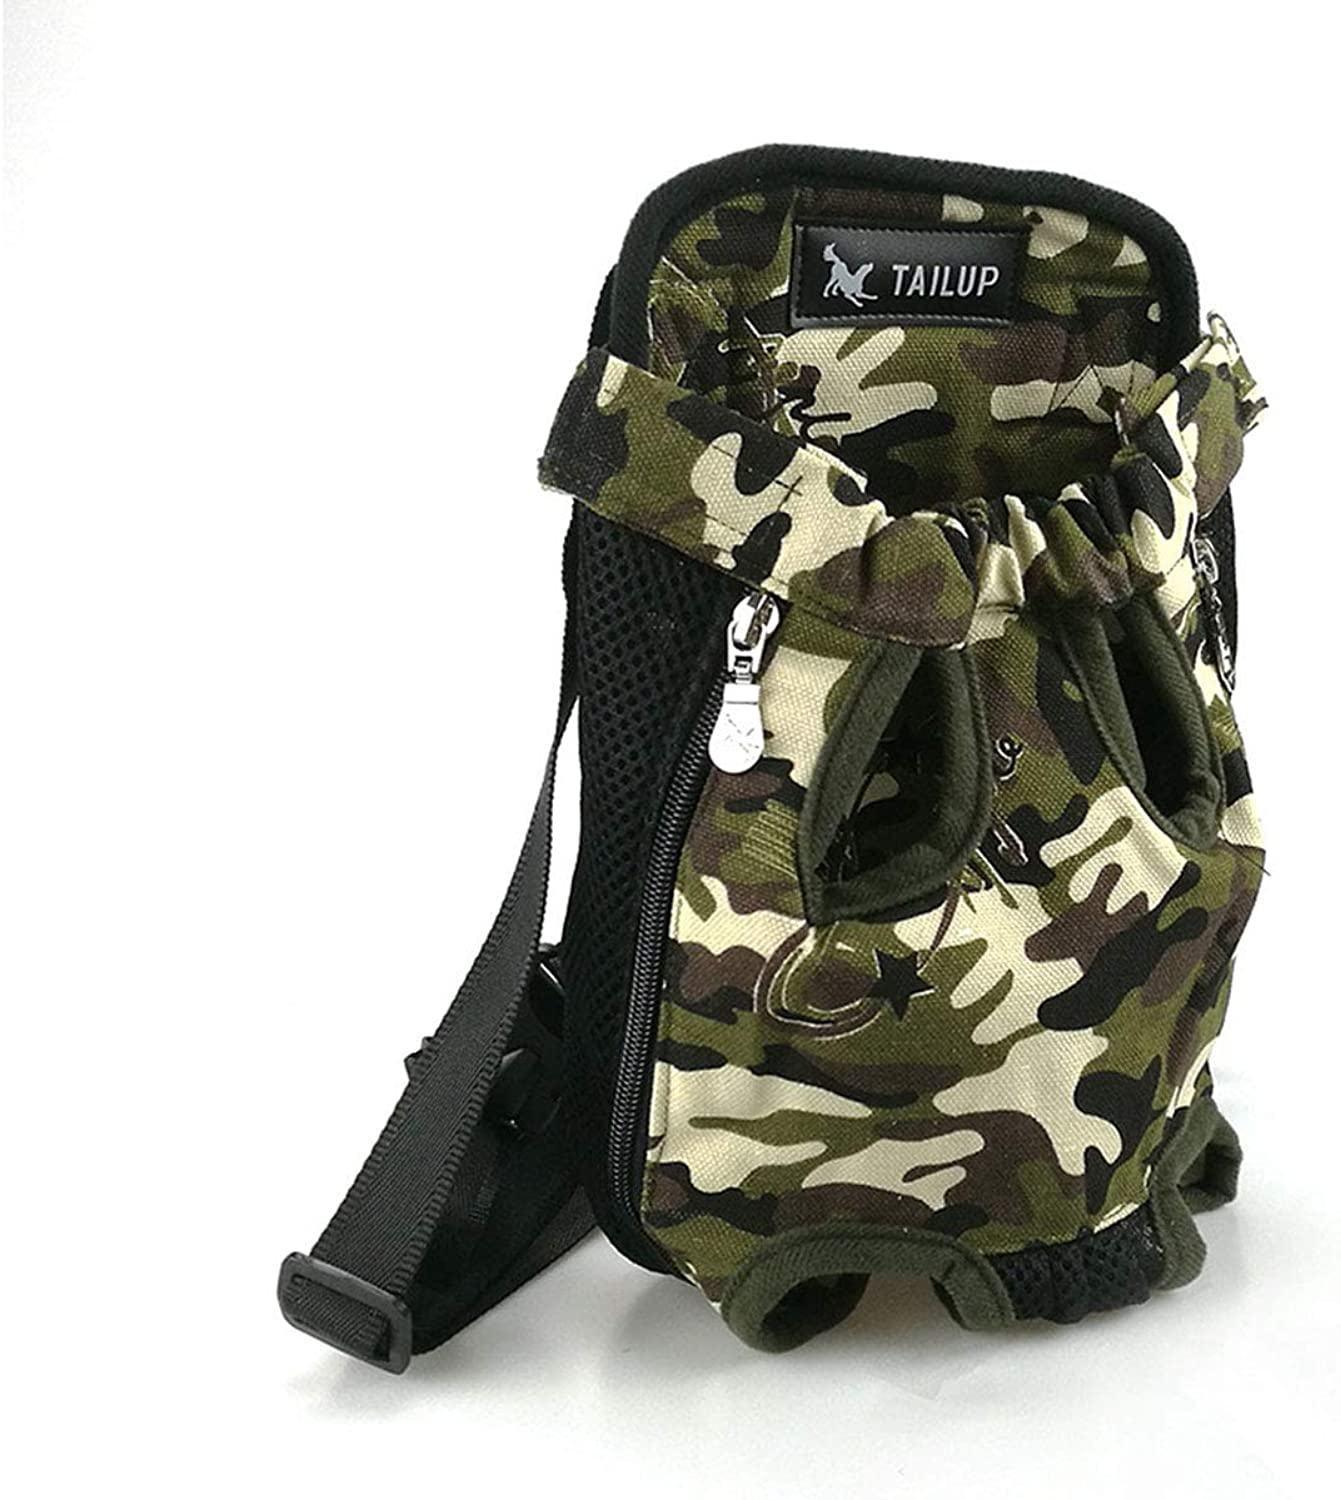 PETFDH Dog Cat Carrier Pet Products for Small Dog Carrier Puppy Cat Carry Backpack Dog Bag Handbags Hammock Backpack PY0002 Camouflage M for 2.54kg